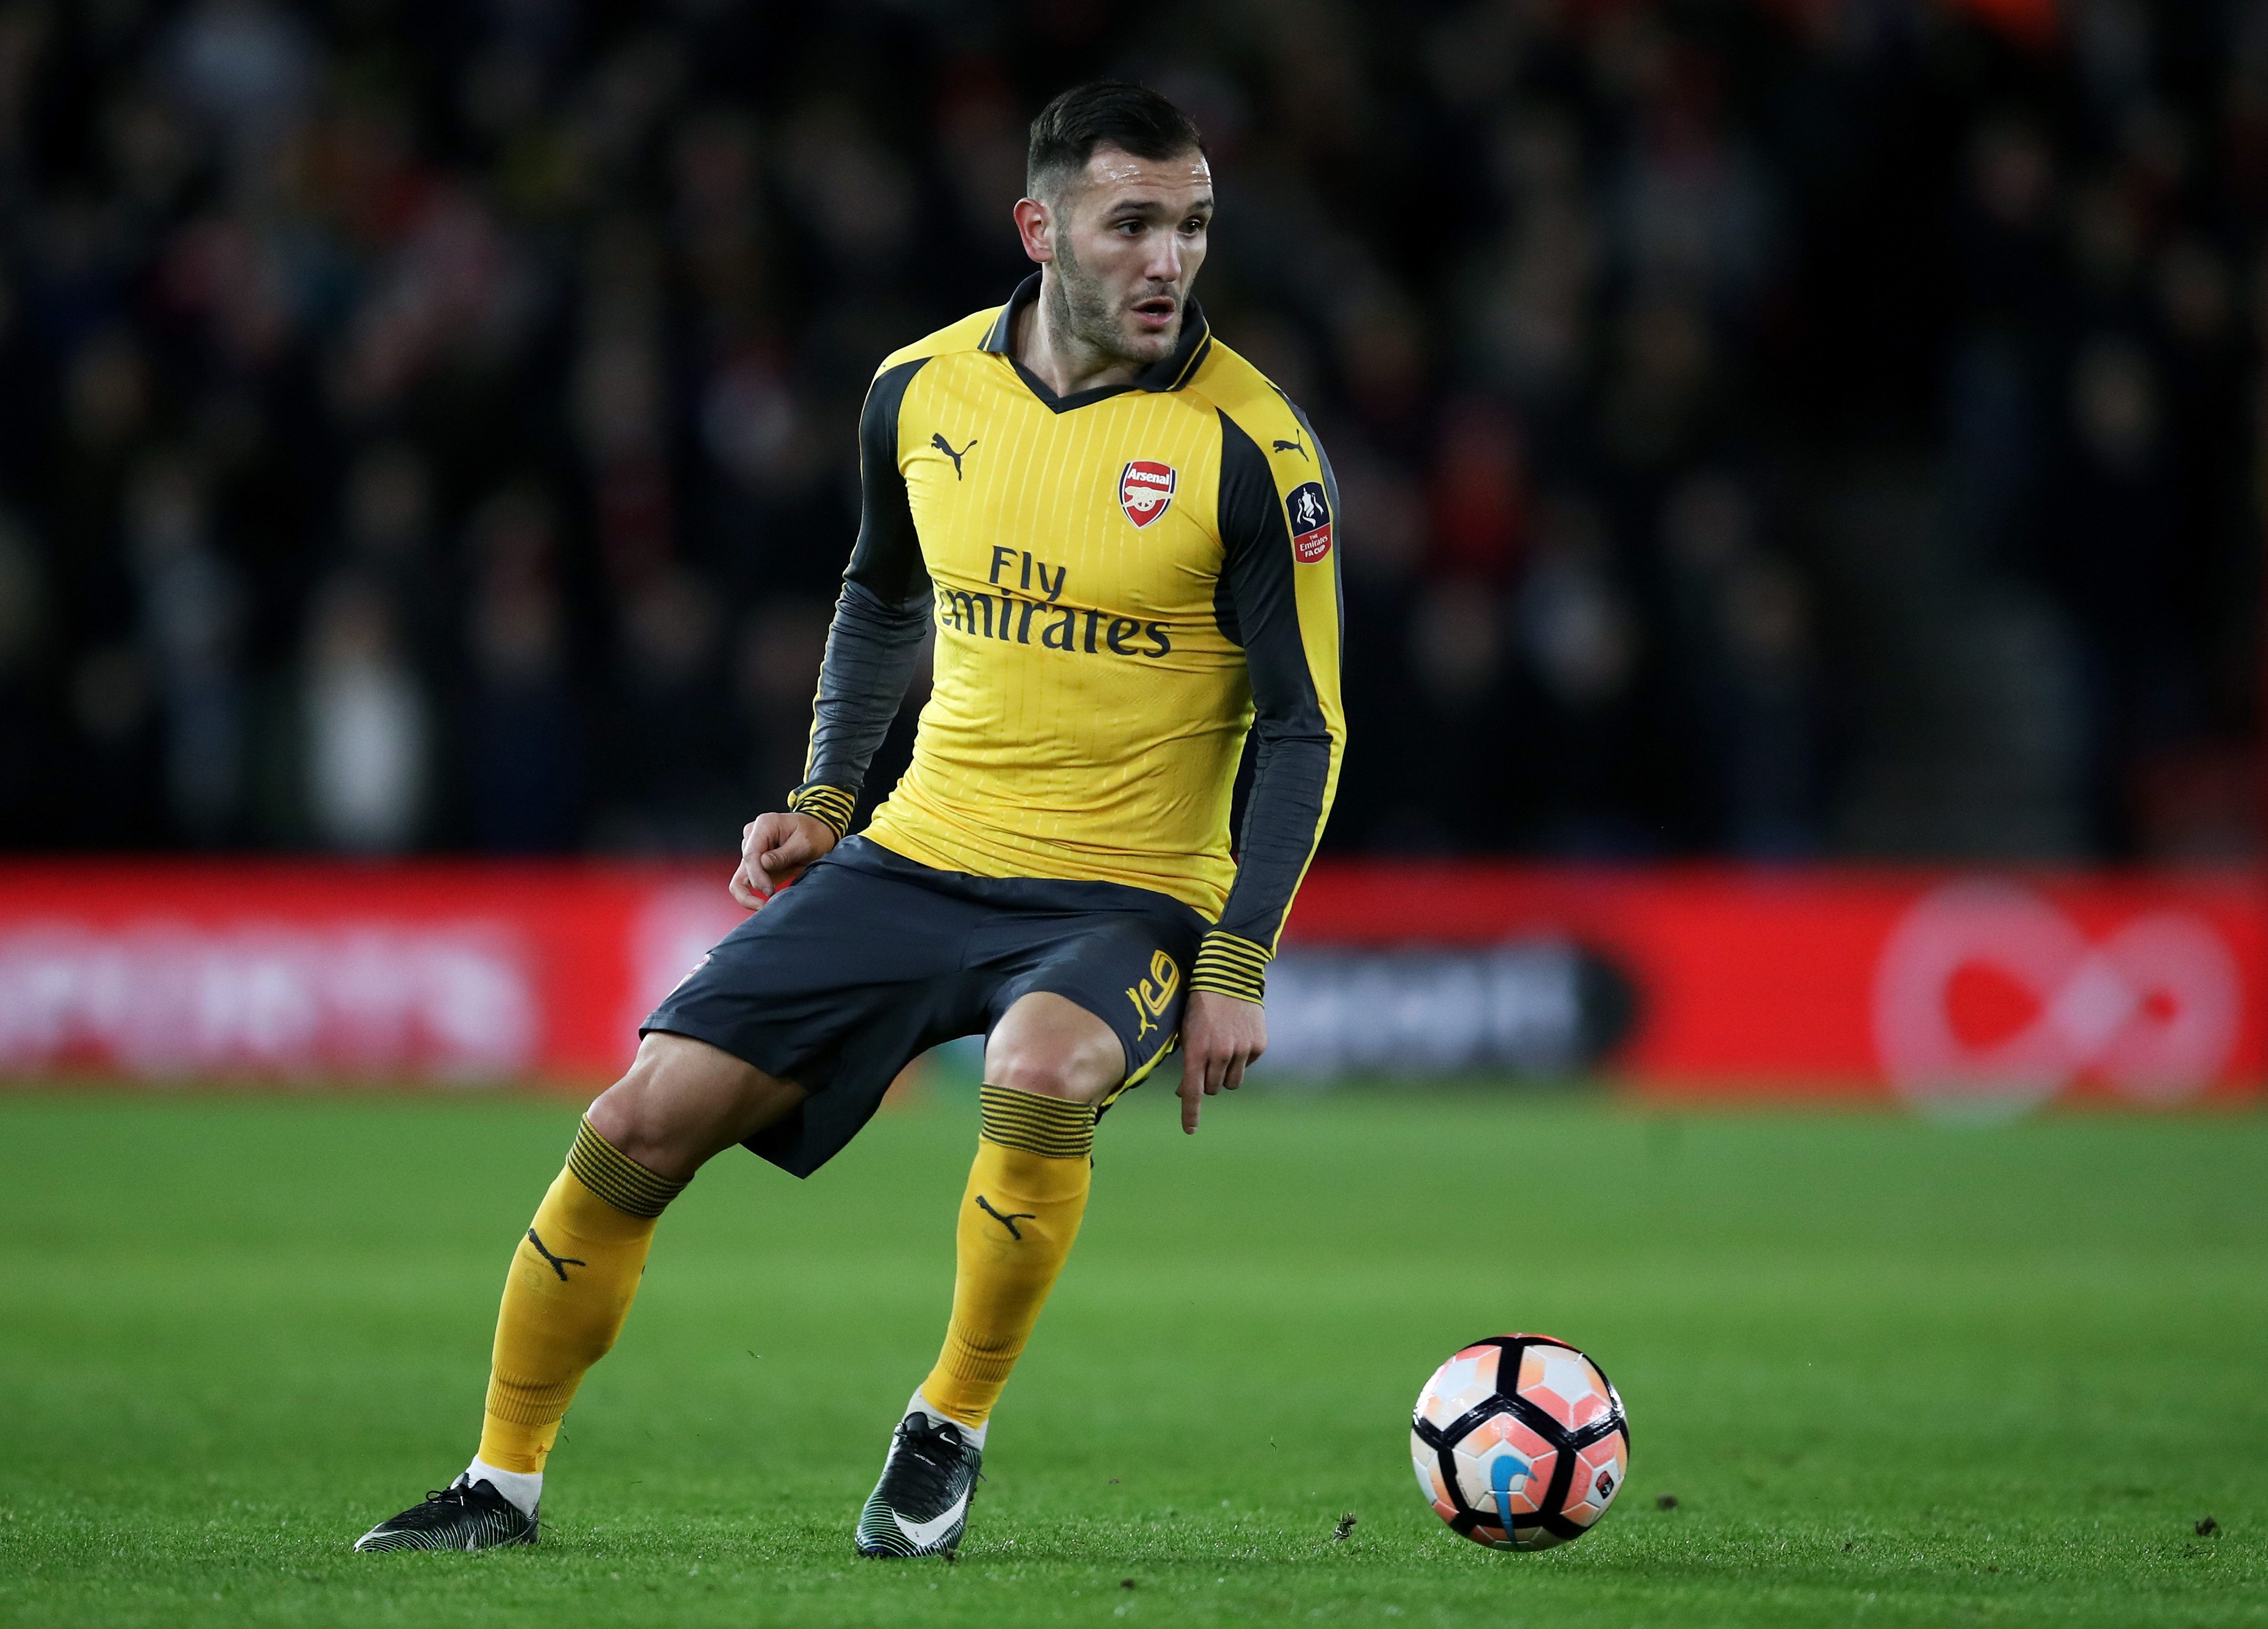 SOUTHAMPTON, ENGLAND - JANUARY 28: Lucas Perez of Arsenal in action during the Emirates FA Cup Fourth Round match between Southampton and Arsenal at St Mary's Stadium on January 28, 2017 in Southampton, England. (Photo by Julian Finney/Getty Images)